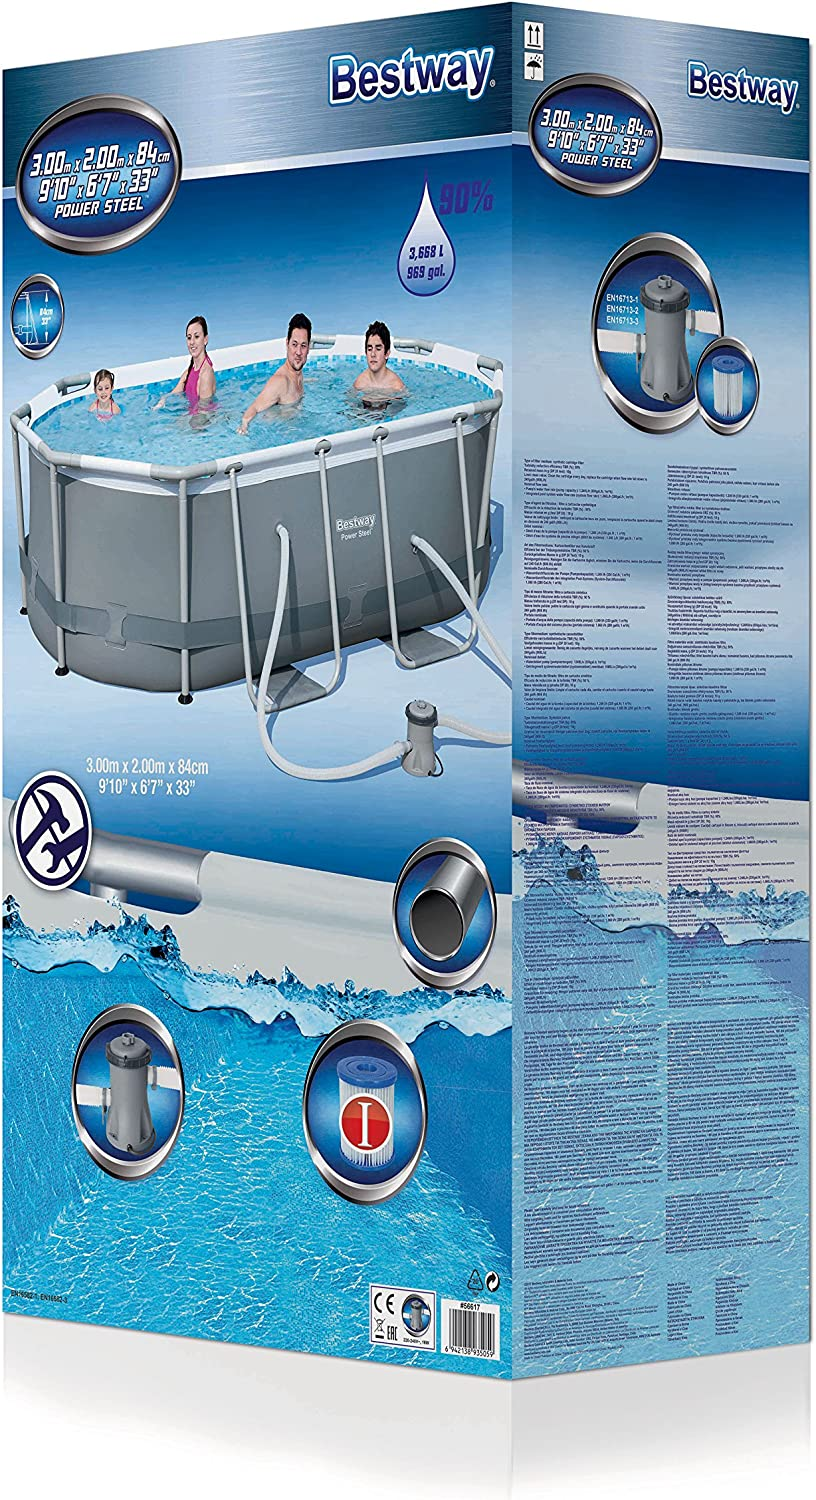 Bestway 56617 Piscina Power Steel Oval, 3.668 Liters, M: Amazon.es ...